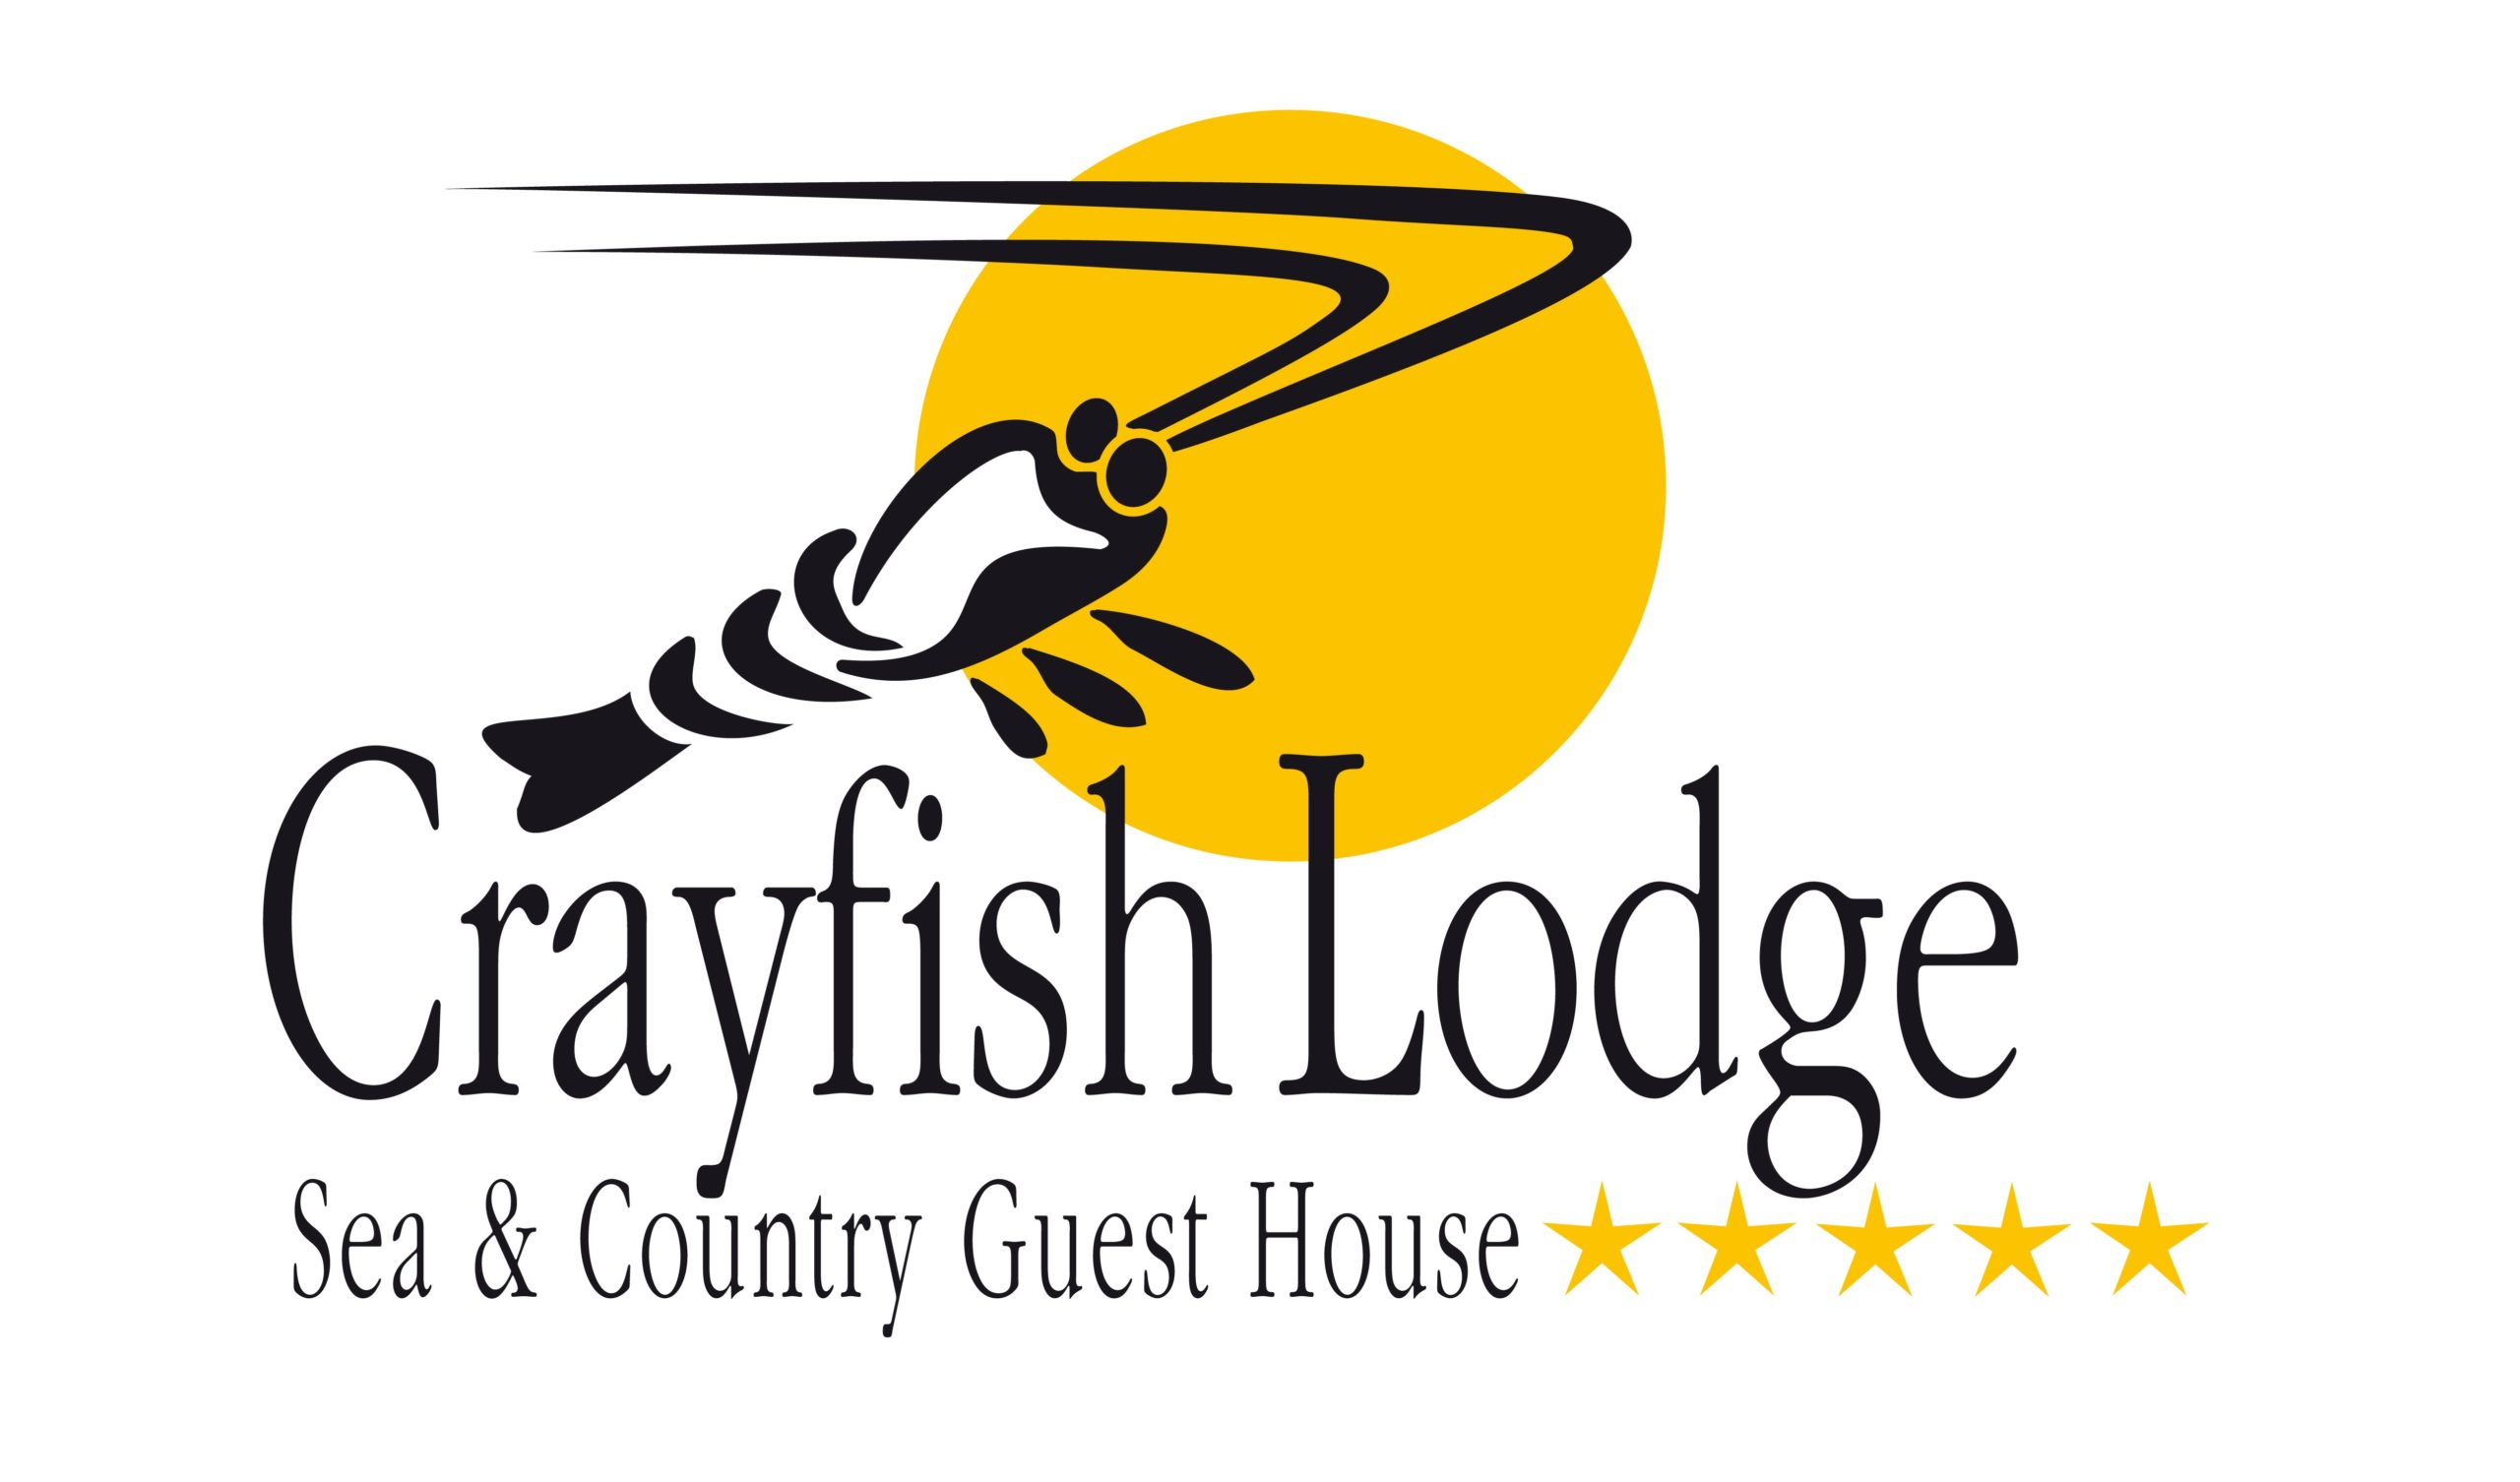 Crayfish Lodge